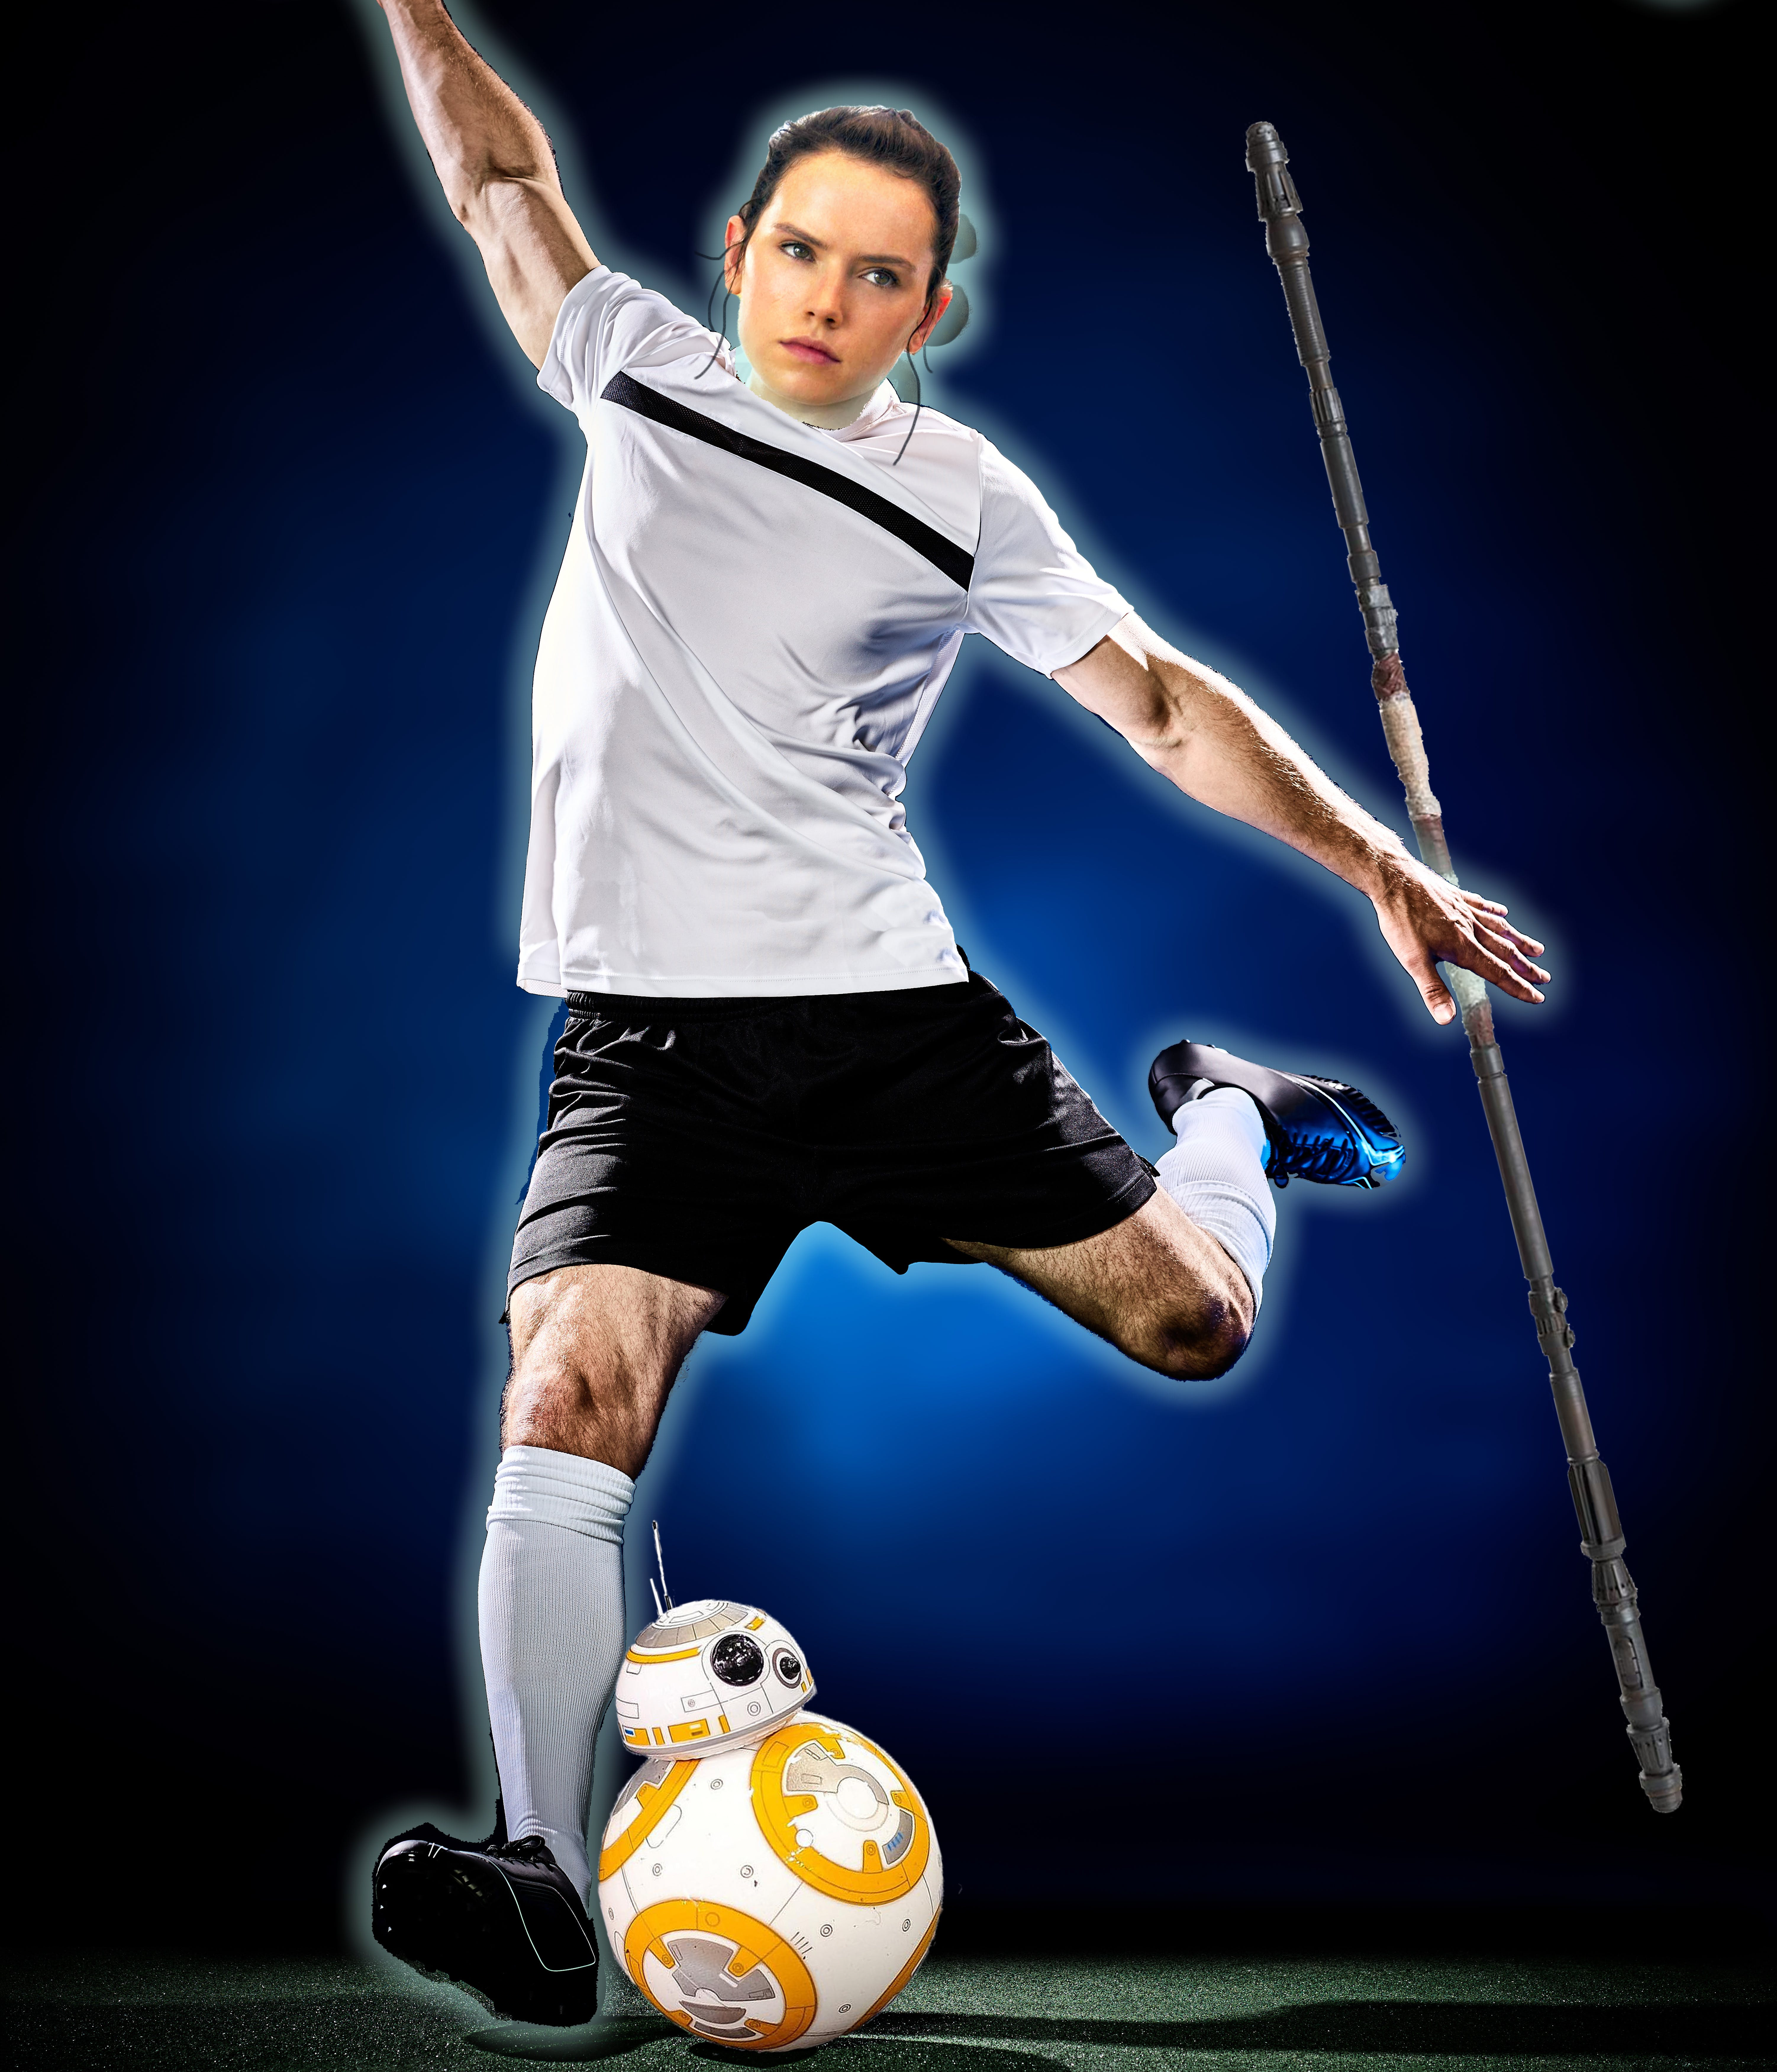 What would Rey be called as a footballer? Rey-naldo? Rey-mar?